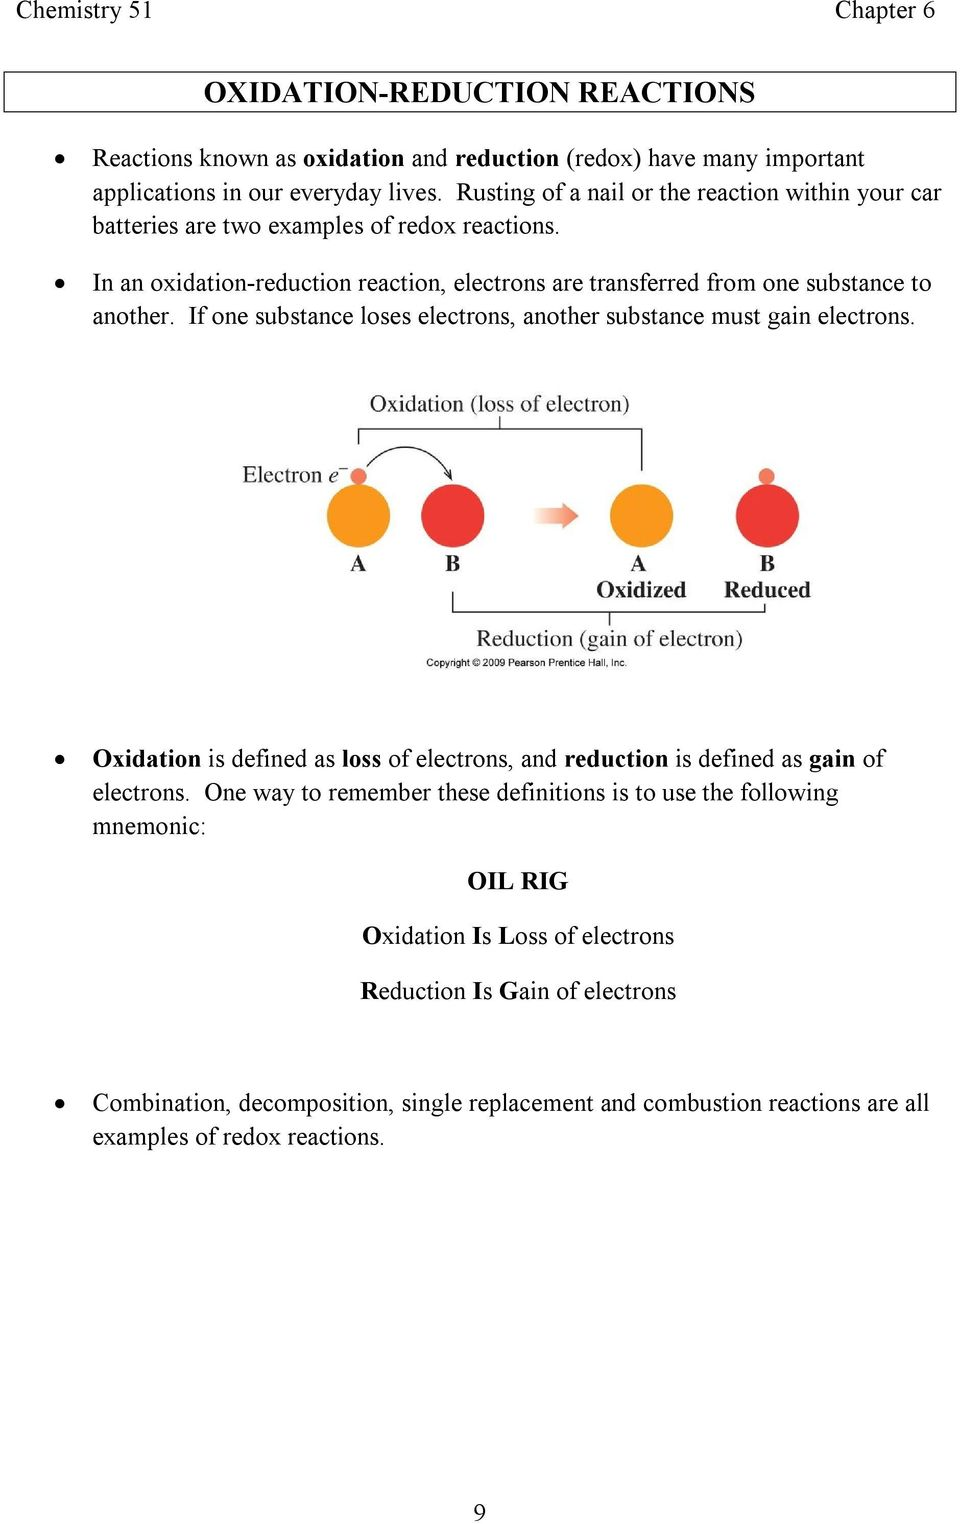 In an oxidation reduction reaction, electrons are transferred from one substance to another. If one substance loses electrons, another substance must gain electrons.